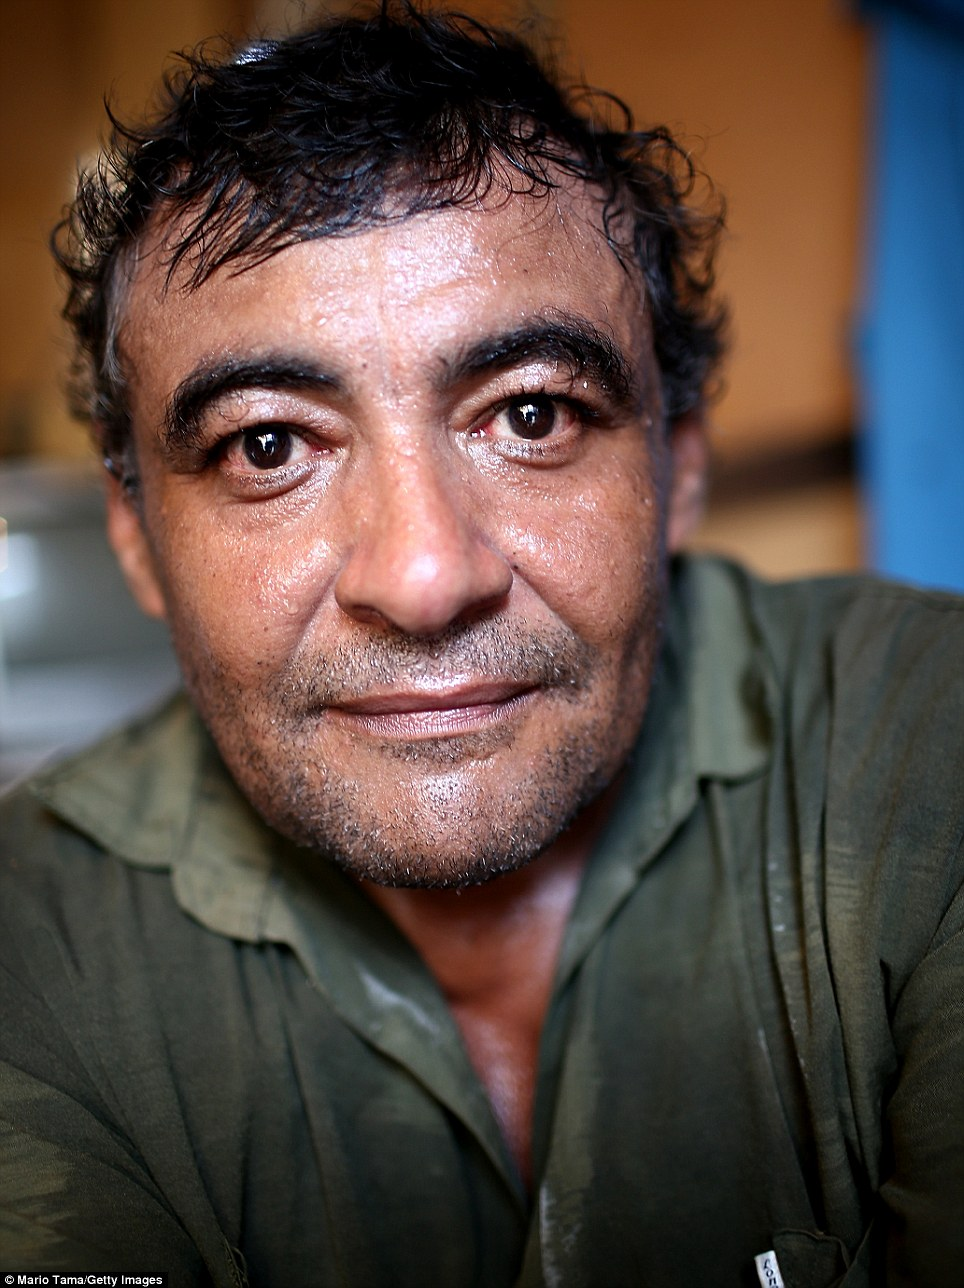 Joao Batista da Silva lives in the slum. A clean-up operation began on Rio's biggest slum Rocinha in 2011. In the clean-up helicopters circled the slum and troops charged into the favela in bullet-proof clothing